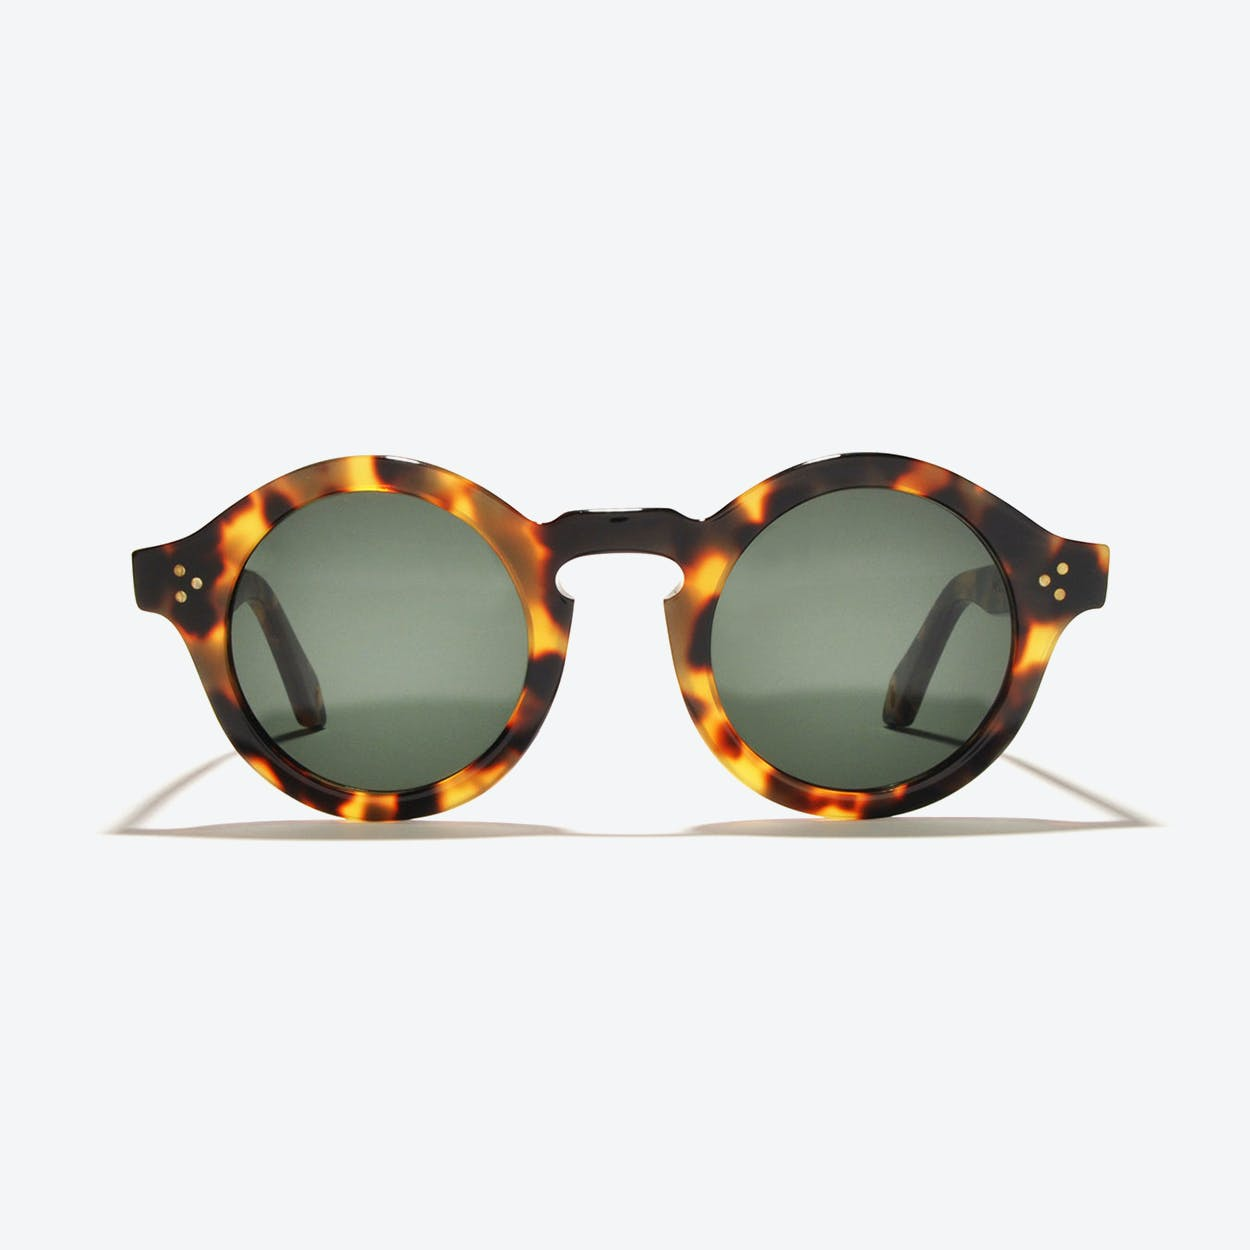 Orion Sunglassses in Amber